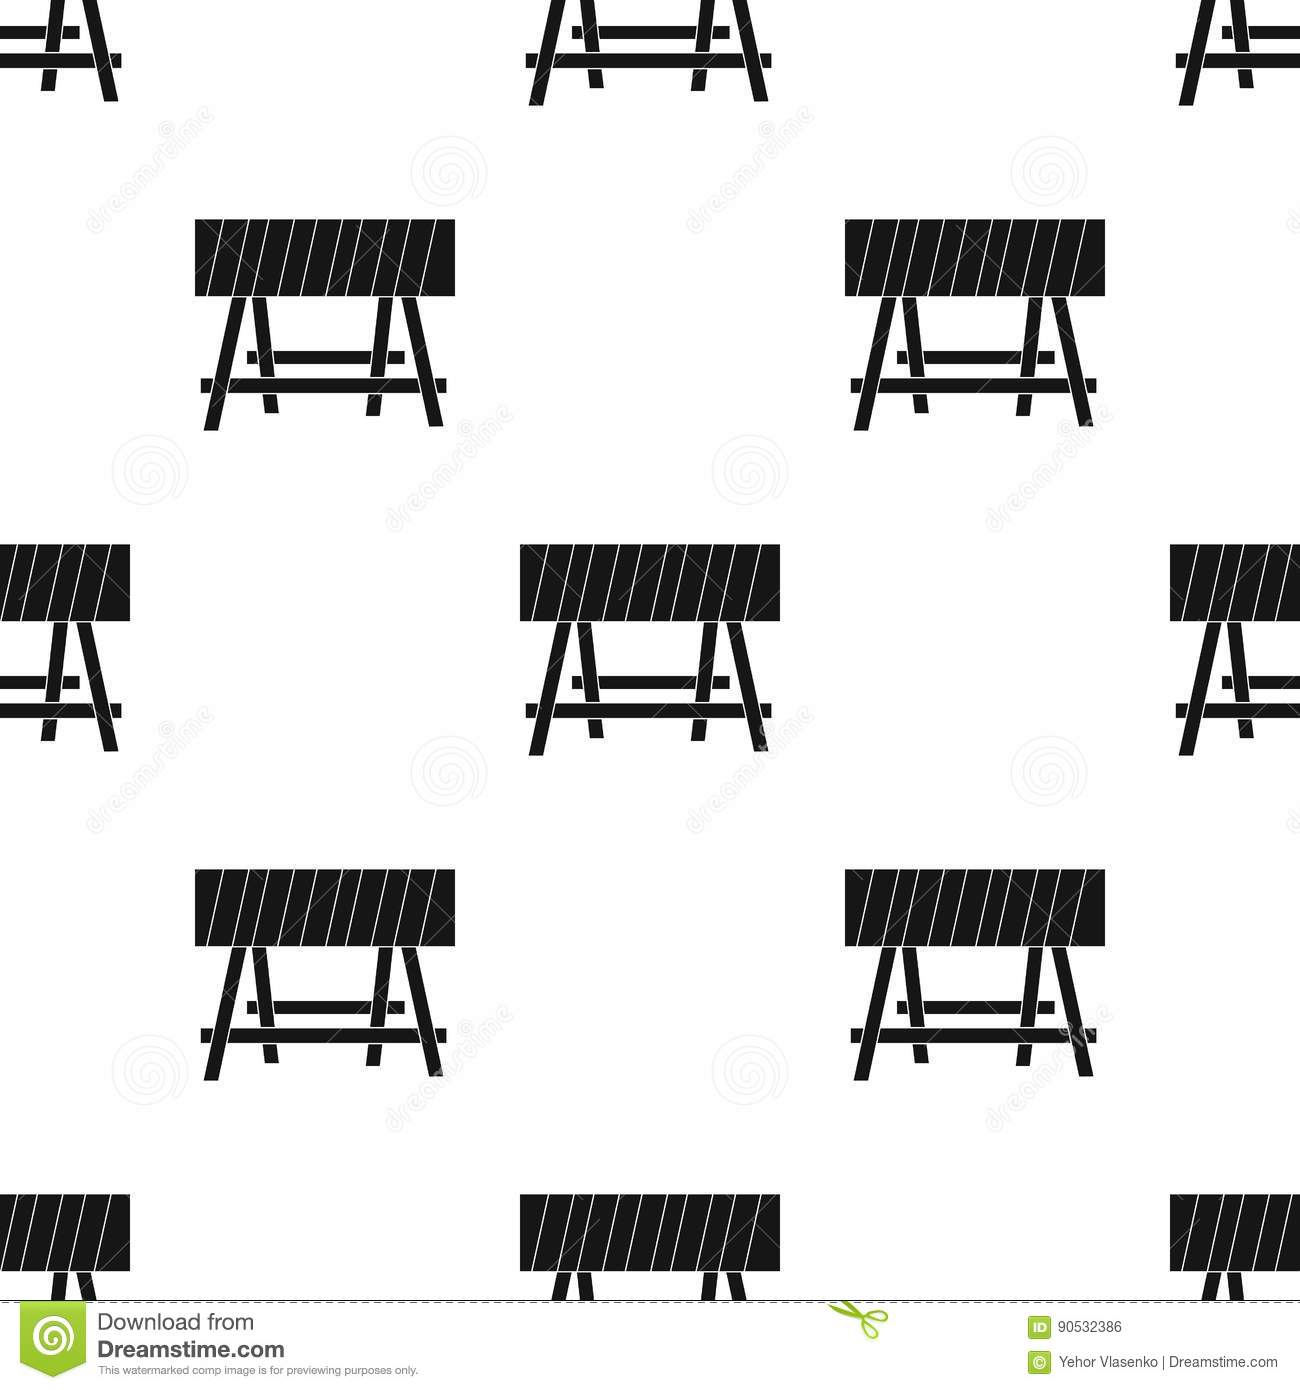 More Arrow Symbols besides Buildingstatistics likewise 808 Cidermont Plano TX 75074 M75200 05113 further Construction Barricade Icon Black Style Isolated White Background Build Repair Pattern Stock Vector in addition Gabion Walls. on no entry barrier